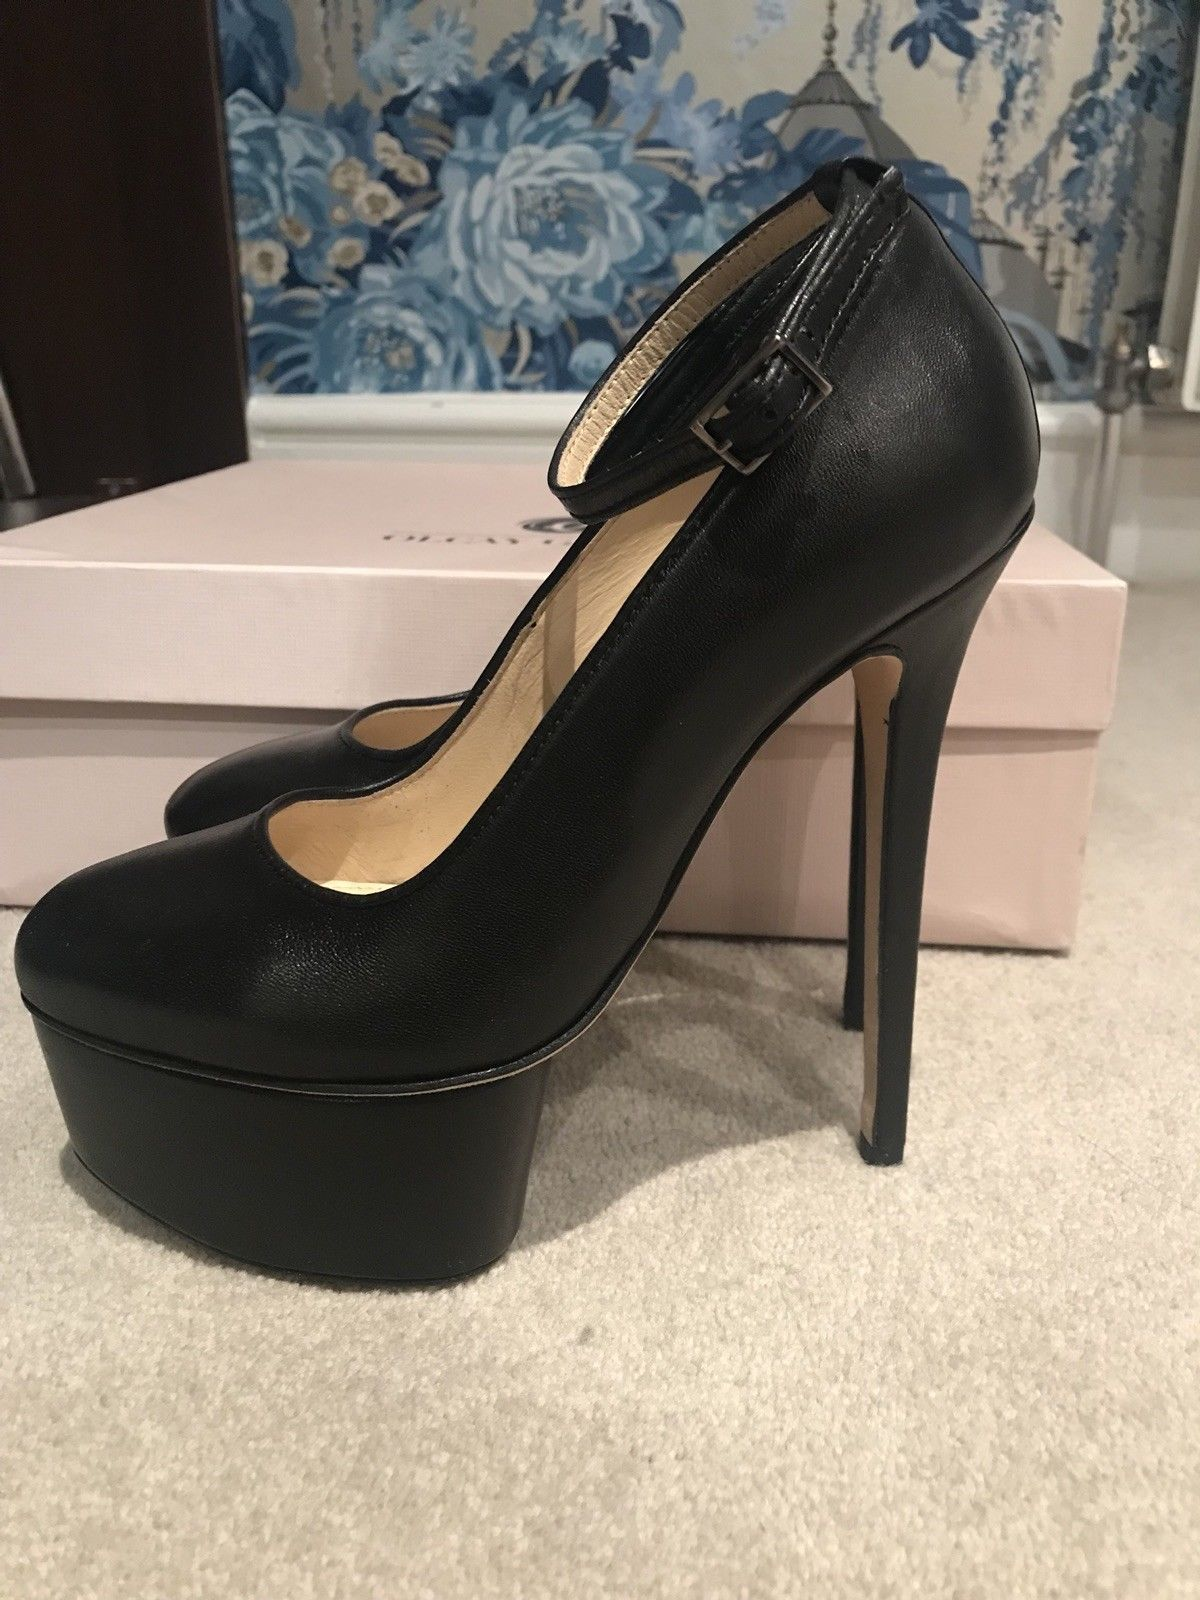 NEVER WORN Olcay Gulsen Designer Black Platform High Heel